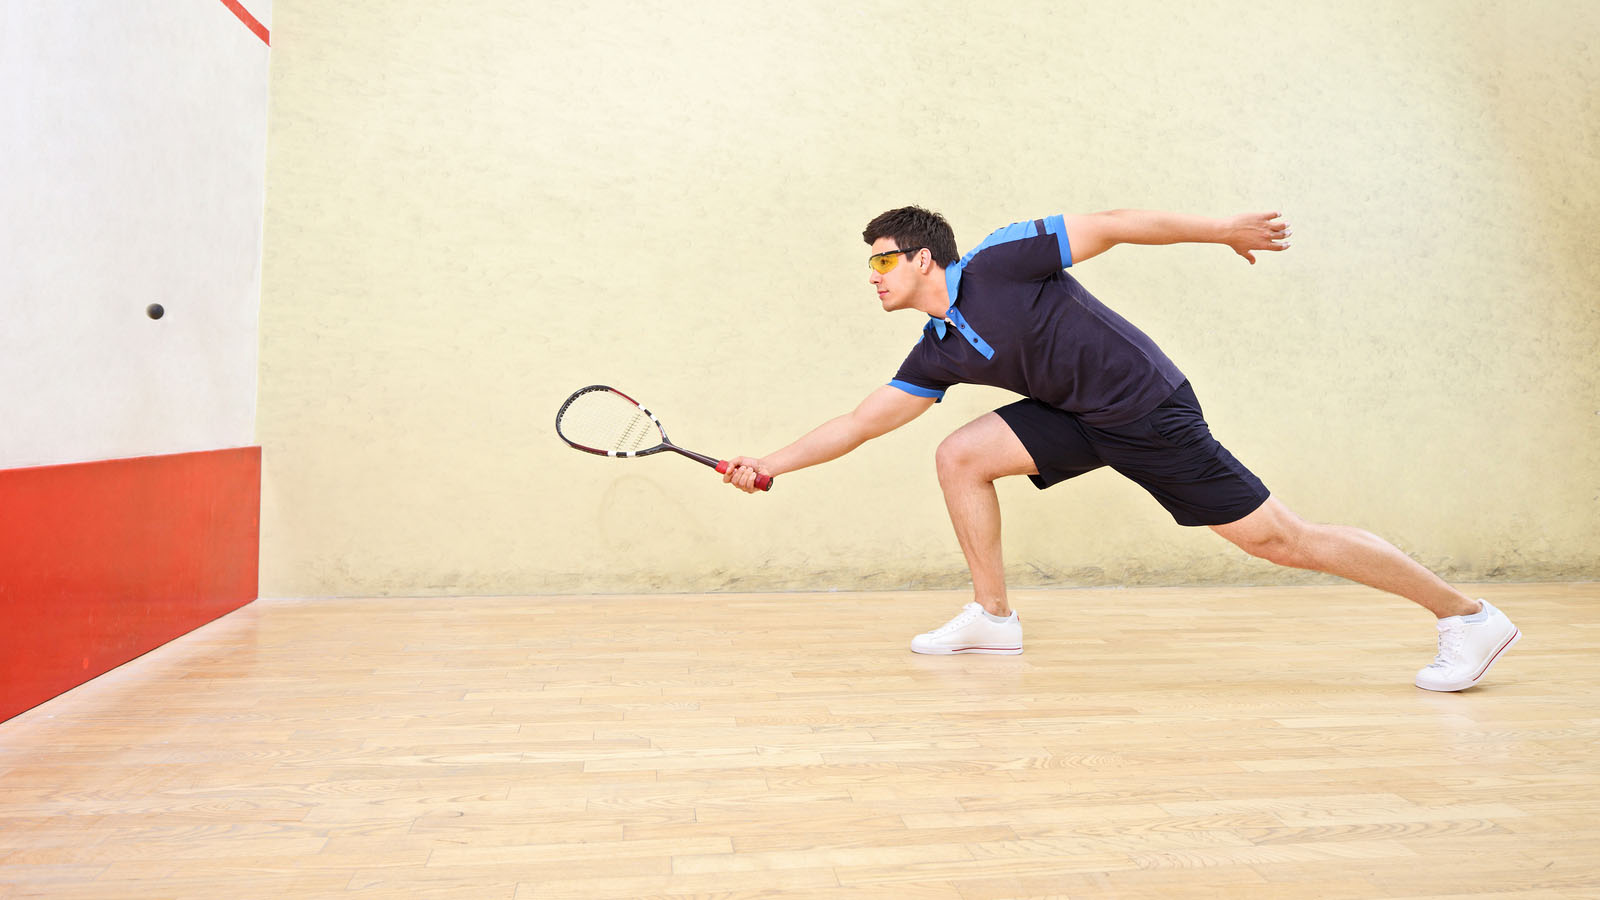 how to play squash alone